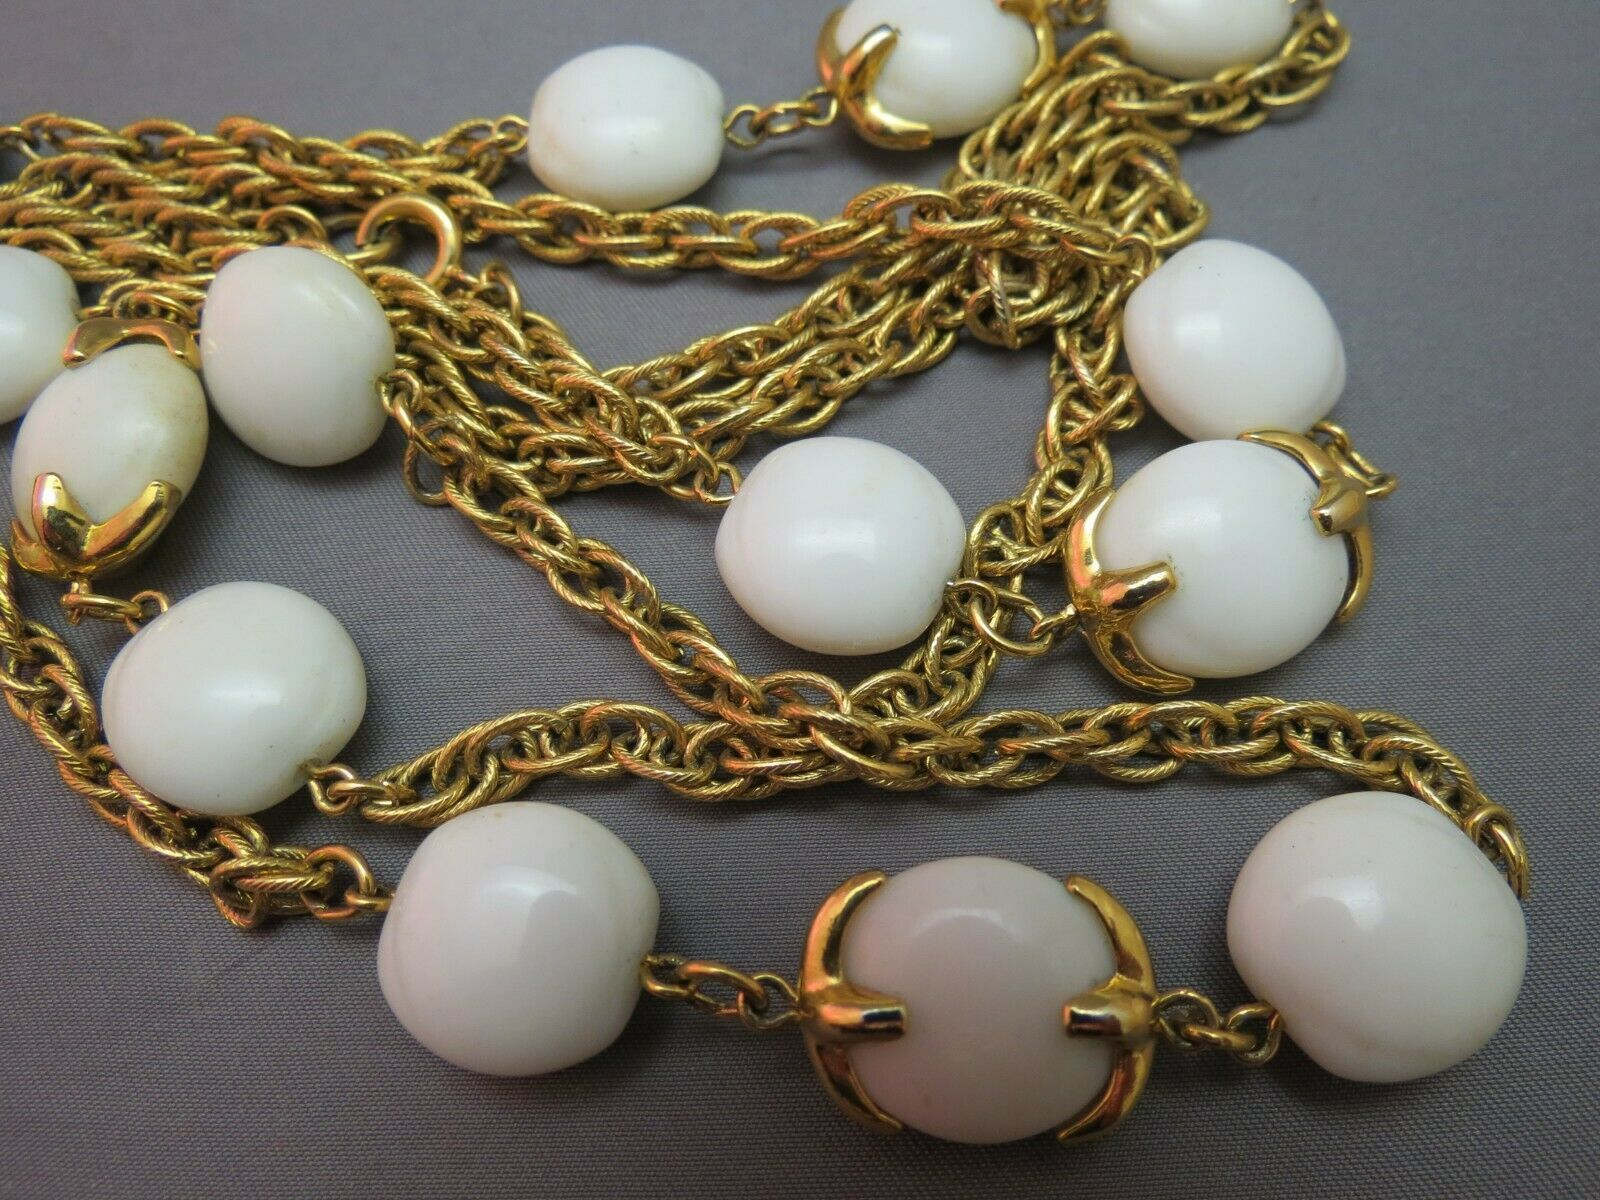 "VTG Crown Trifari Long Necklace Chain Gold Plated Glass Beads Couture 54"" Long"